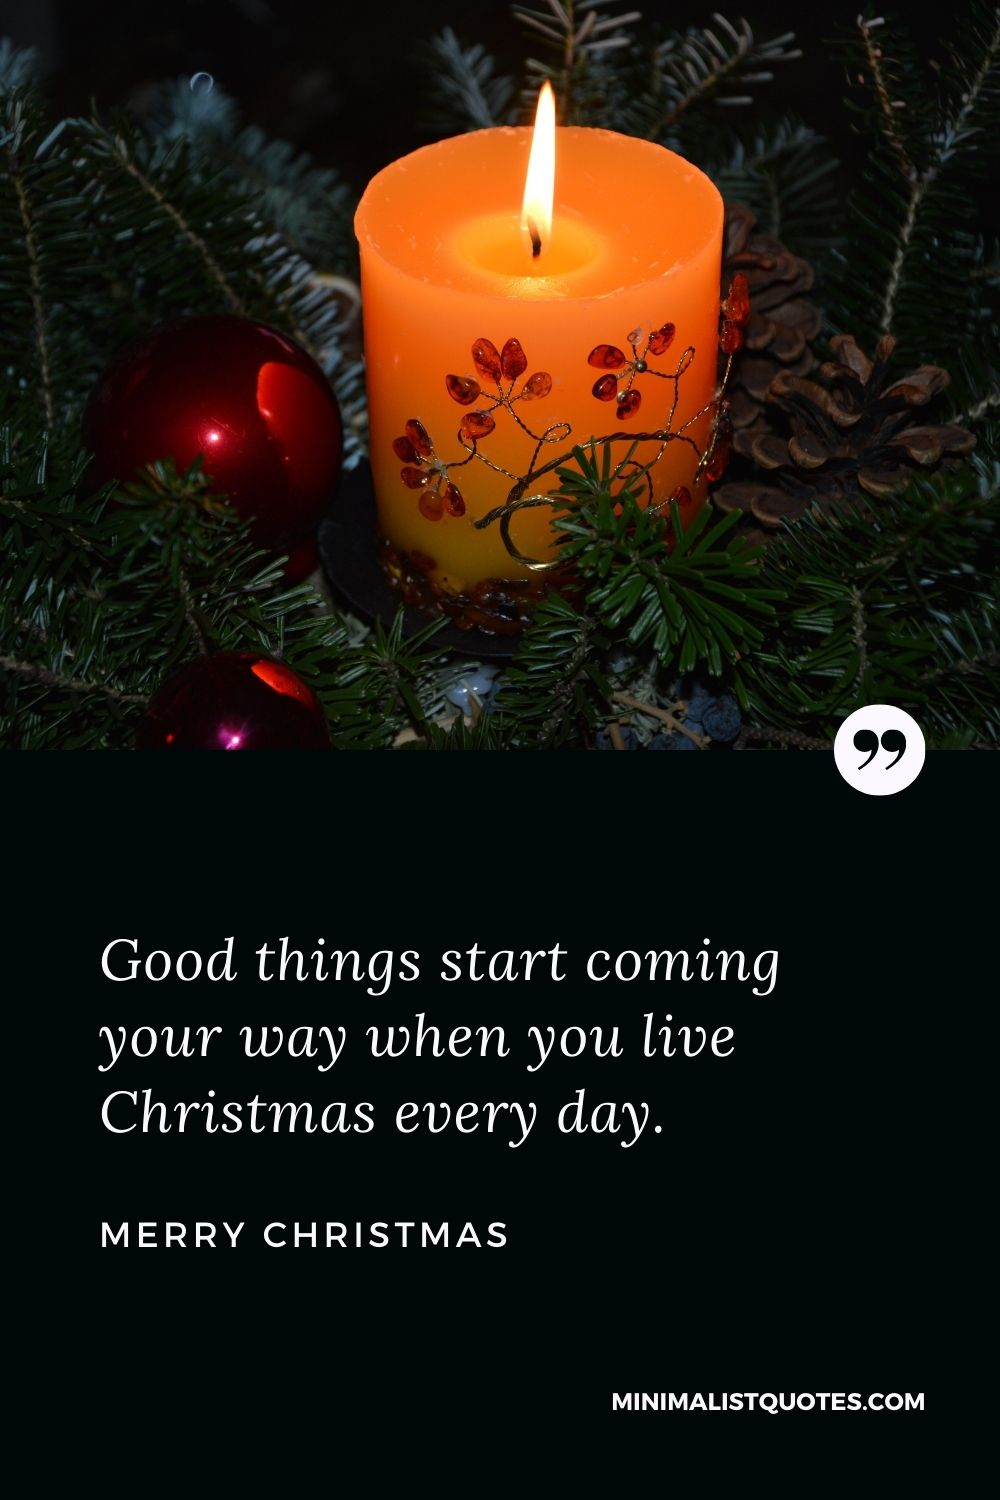 Merry Christmas Wish - Good things start coming your way when you live Christmas every day.